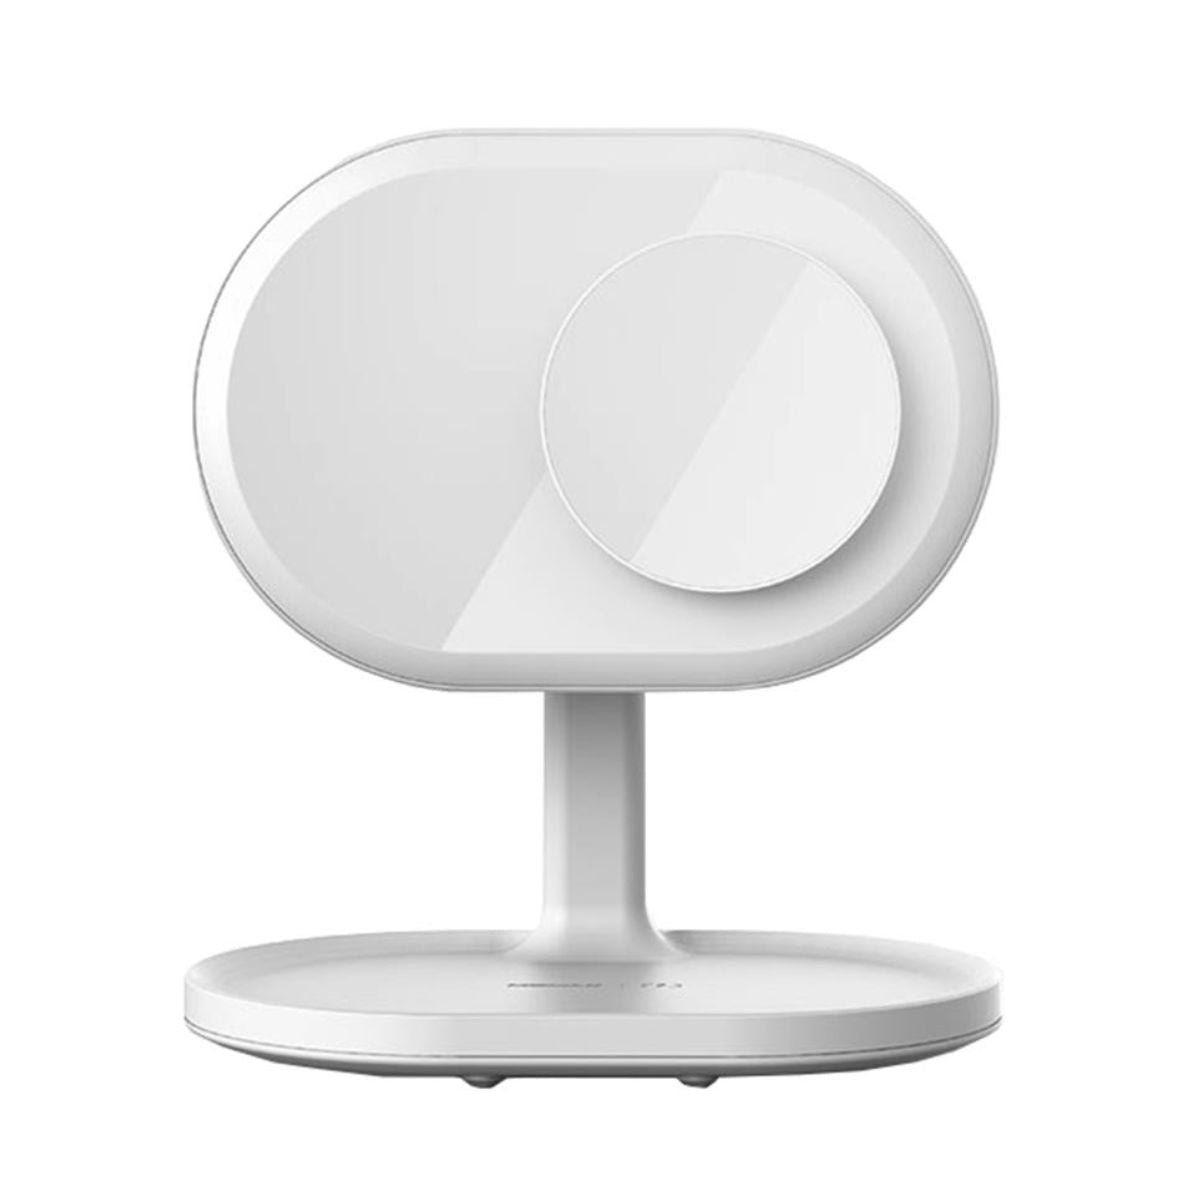 Q.Led mirror with wireless charging and bluetooth speaker